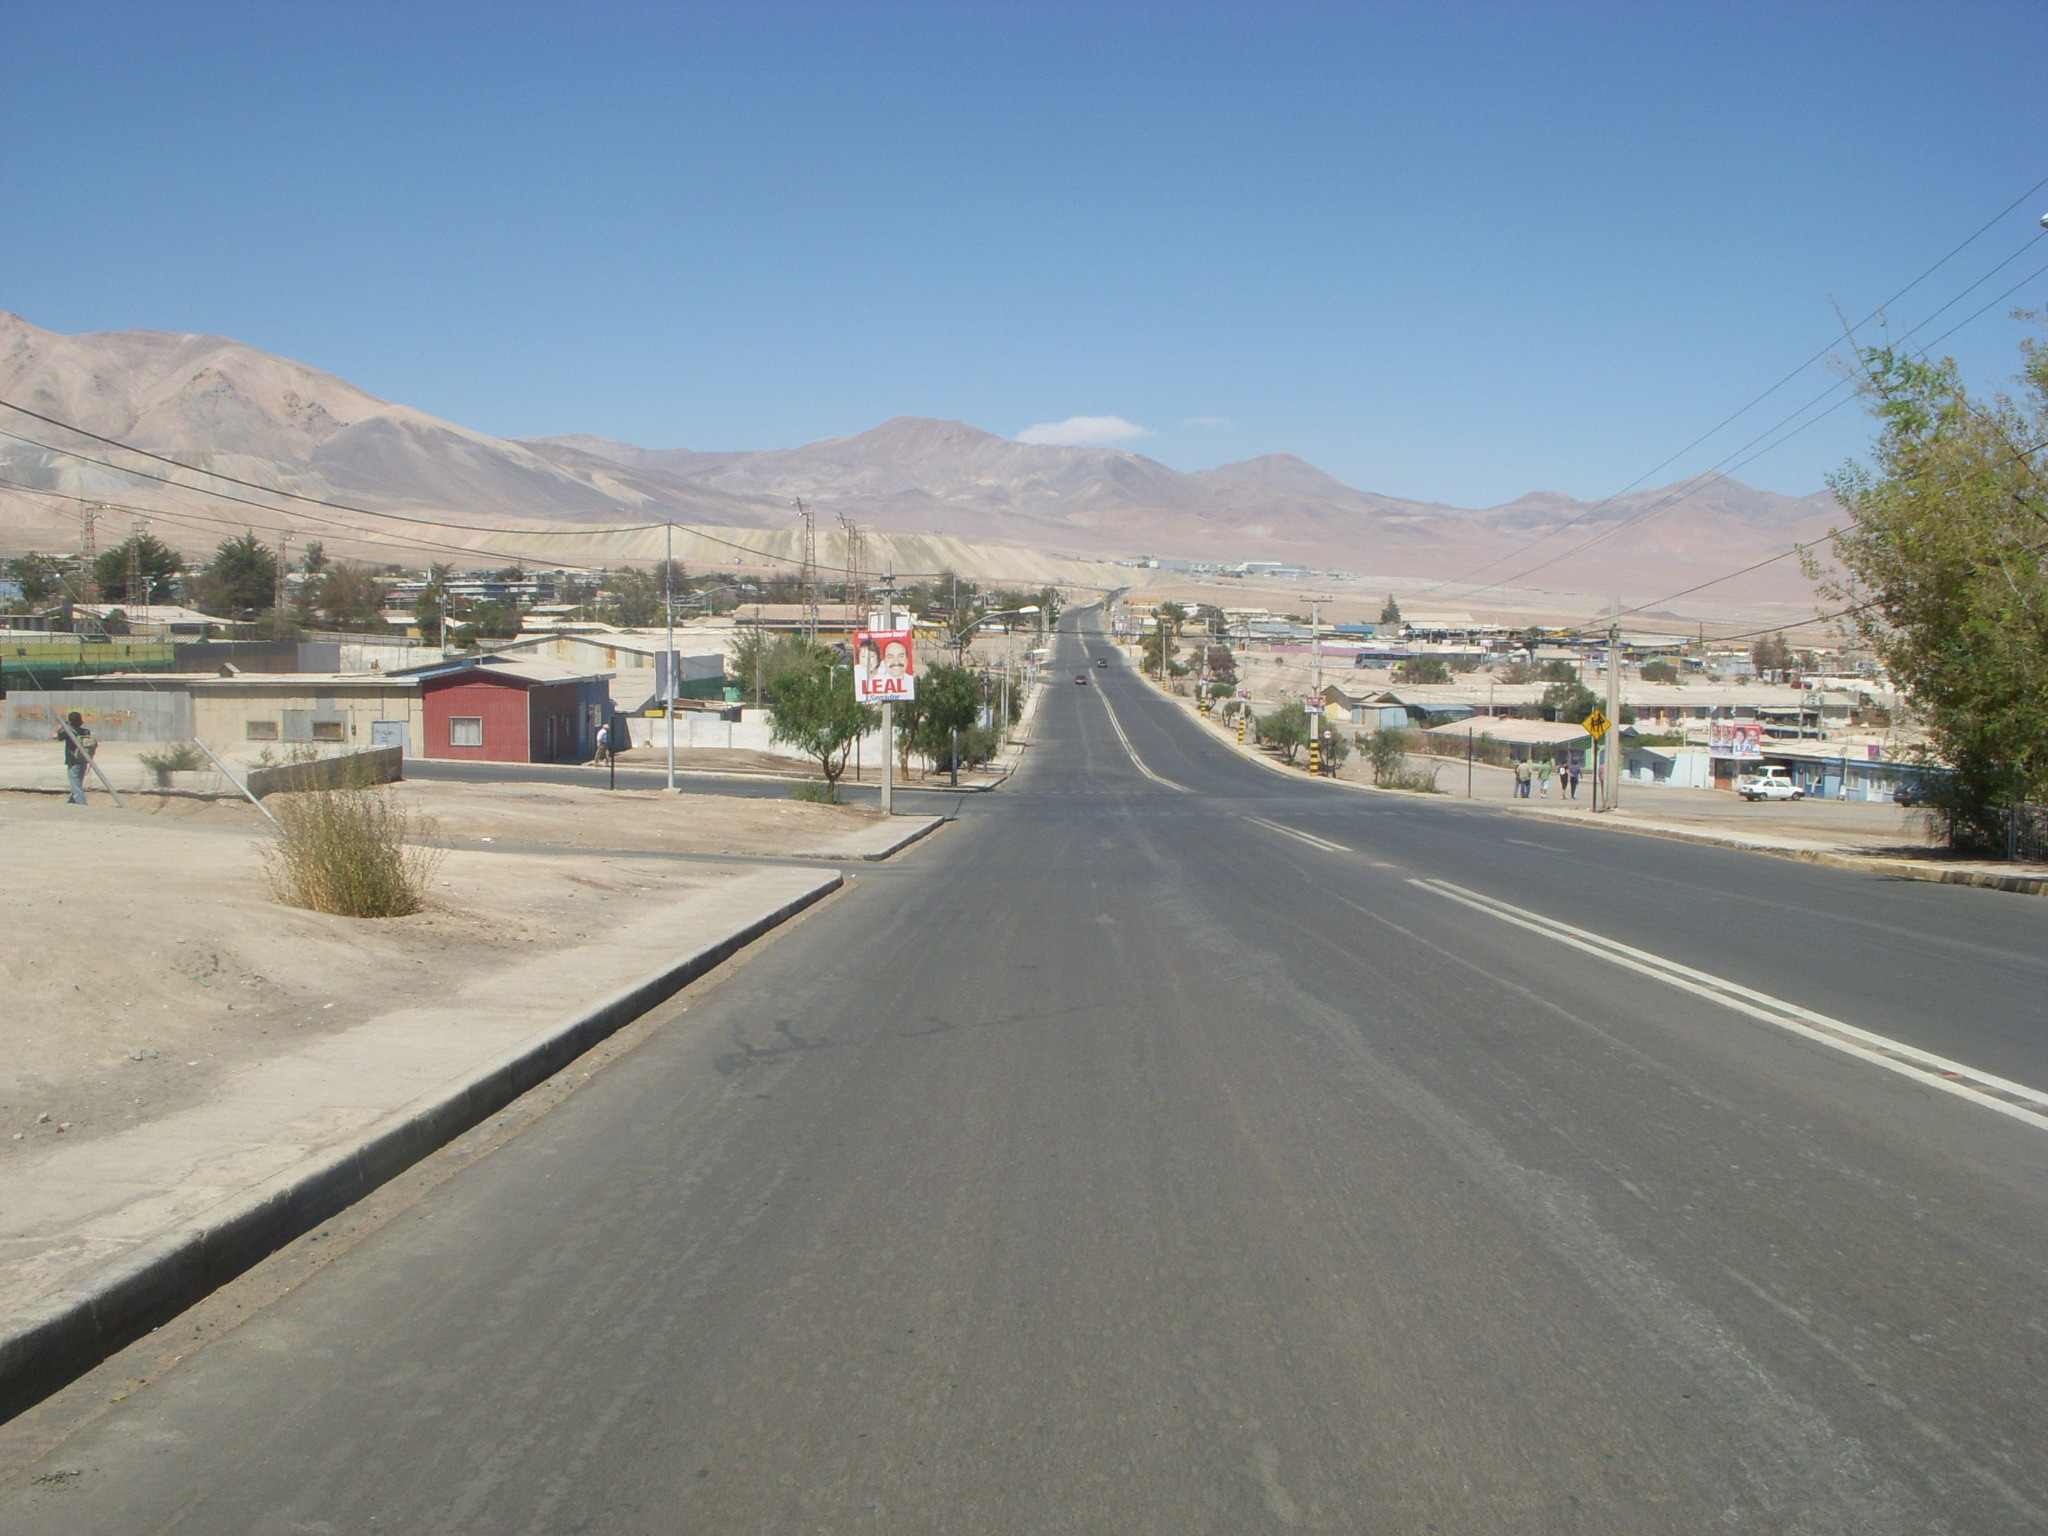 2048x1536 File:El Salvador, Chile 4.jpg